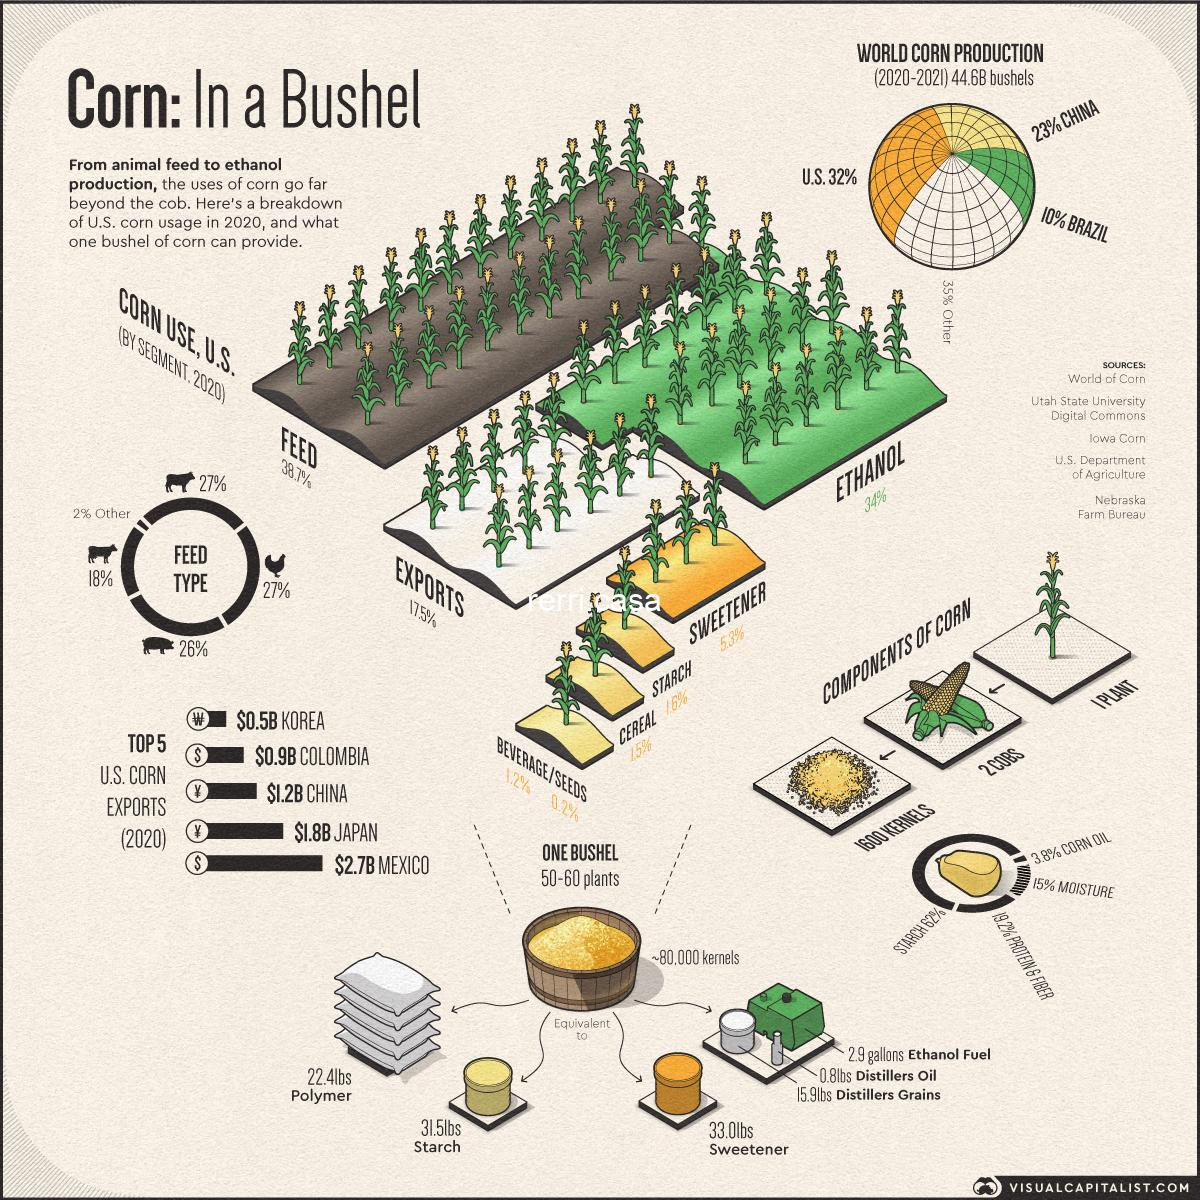 The Uses of Corn: Industries Affected by High Corn Prices